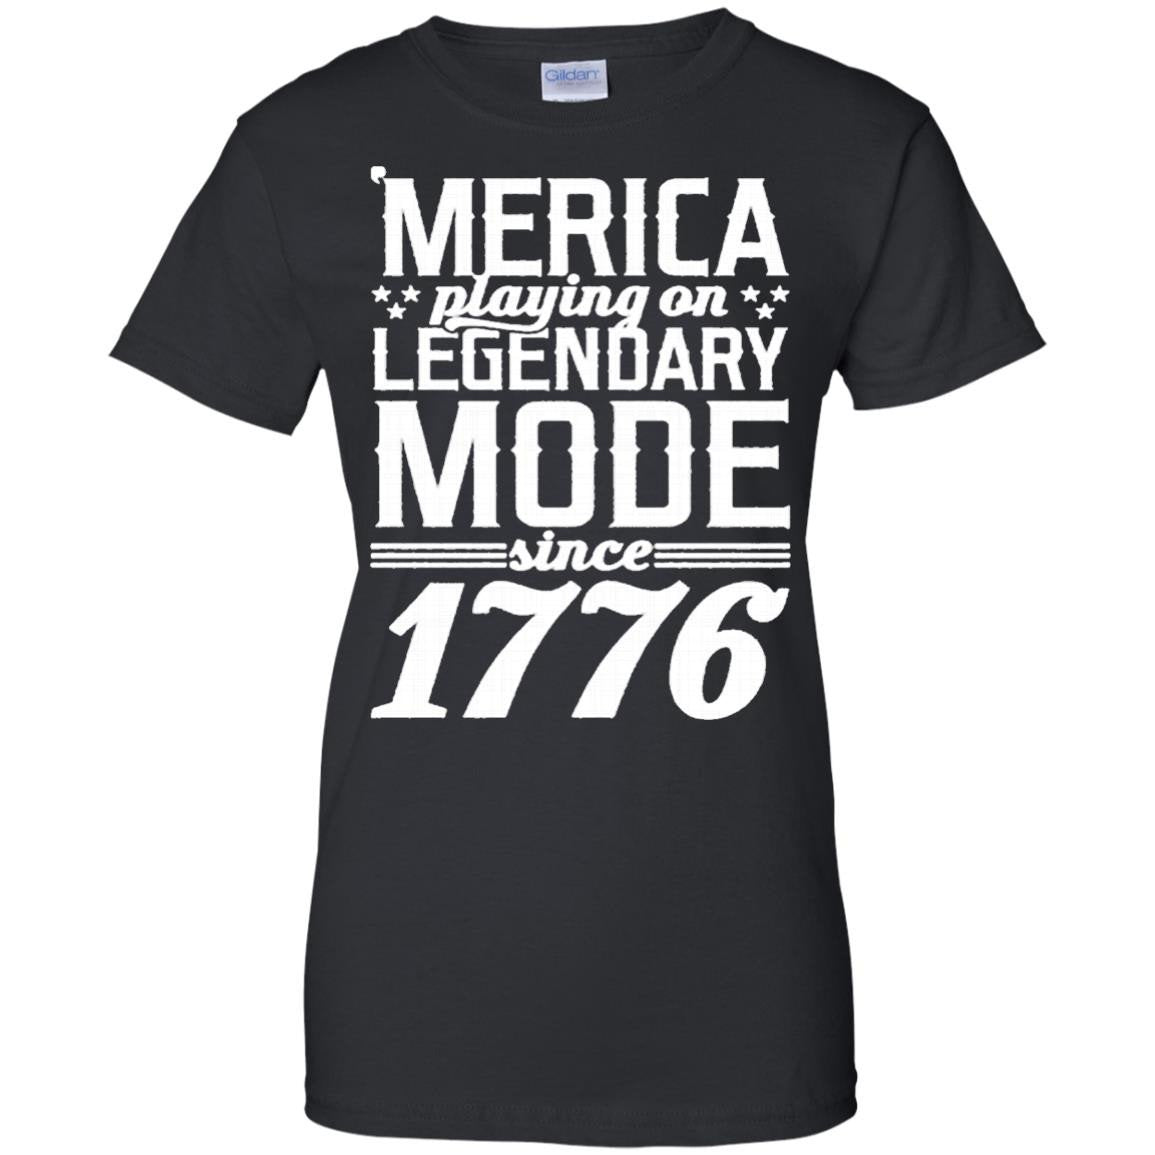 America Shirts MERICA PLAYING ON LEGENDARY MODE SINCE 1776 T-shirts Hoodies Sweatshirts